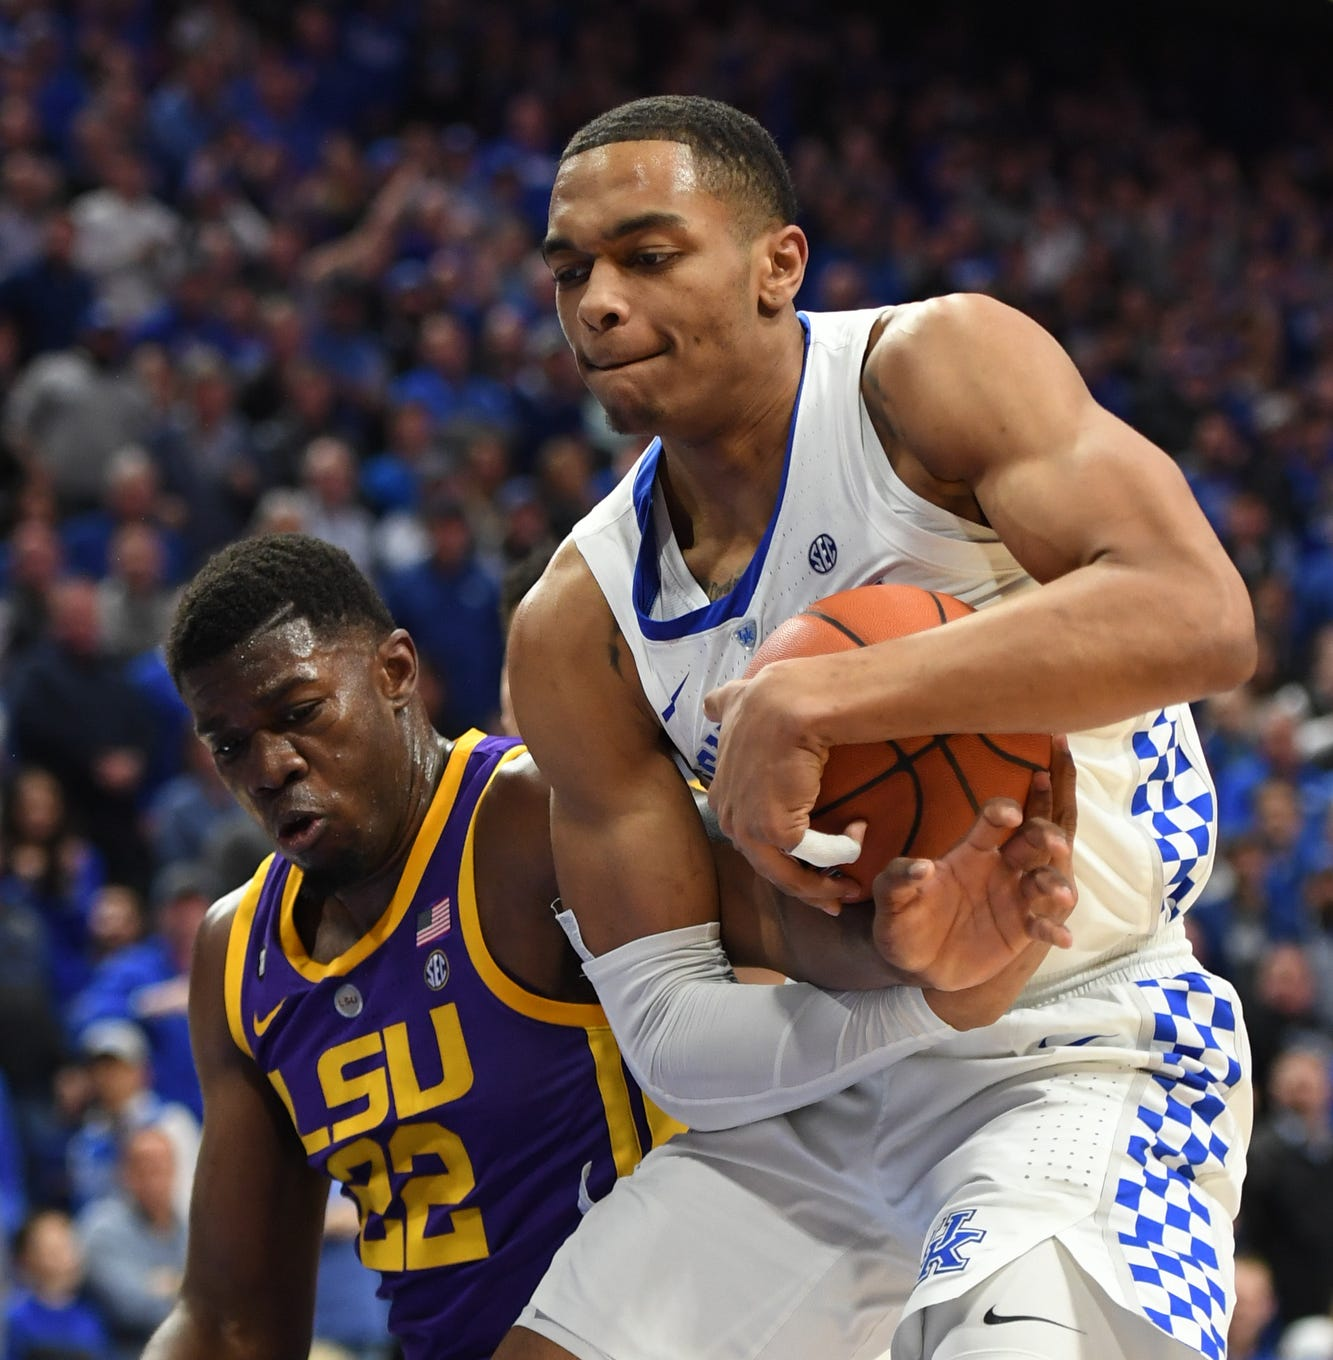 As LSU joins SEC's elite, Kentucky looks to showdown with No. 1 Tennessee